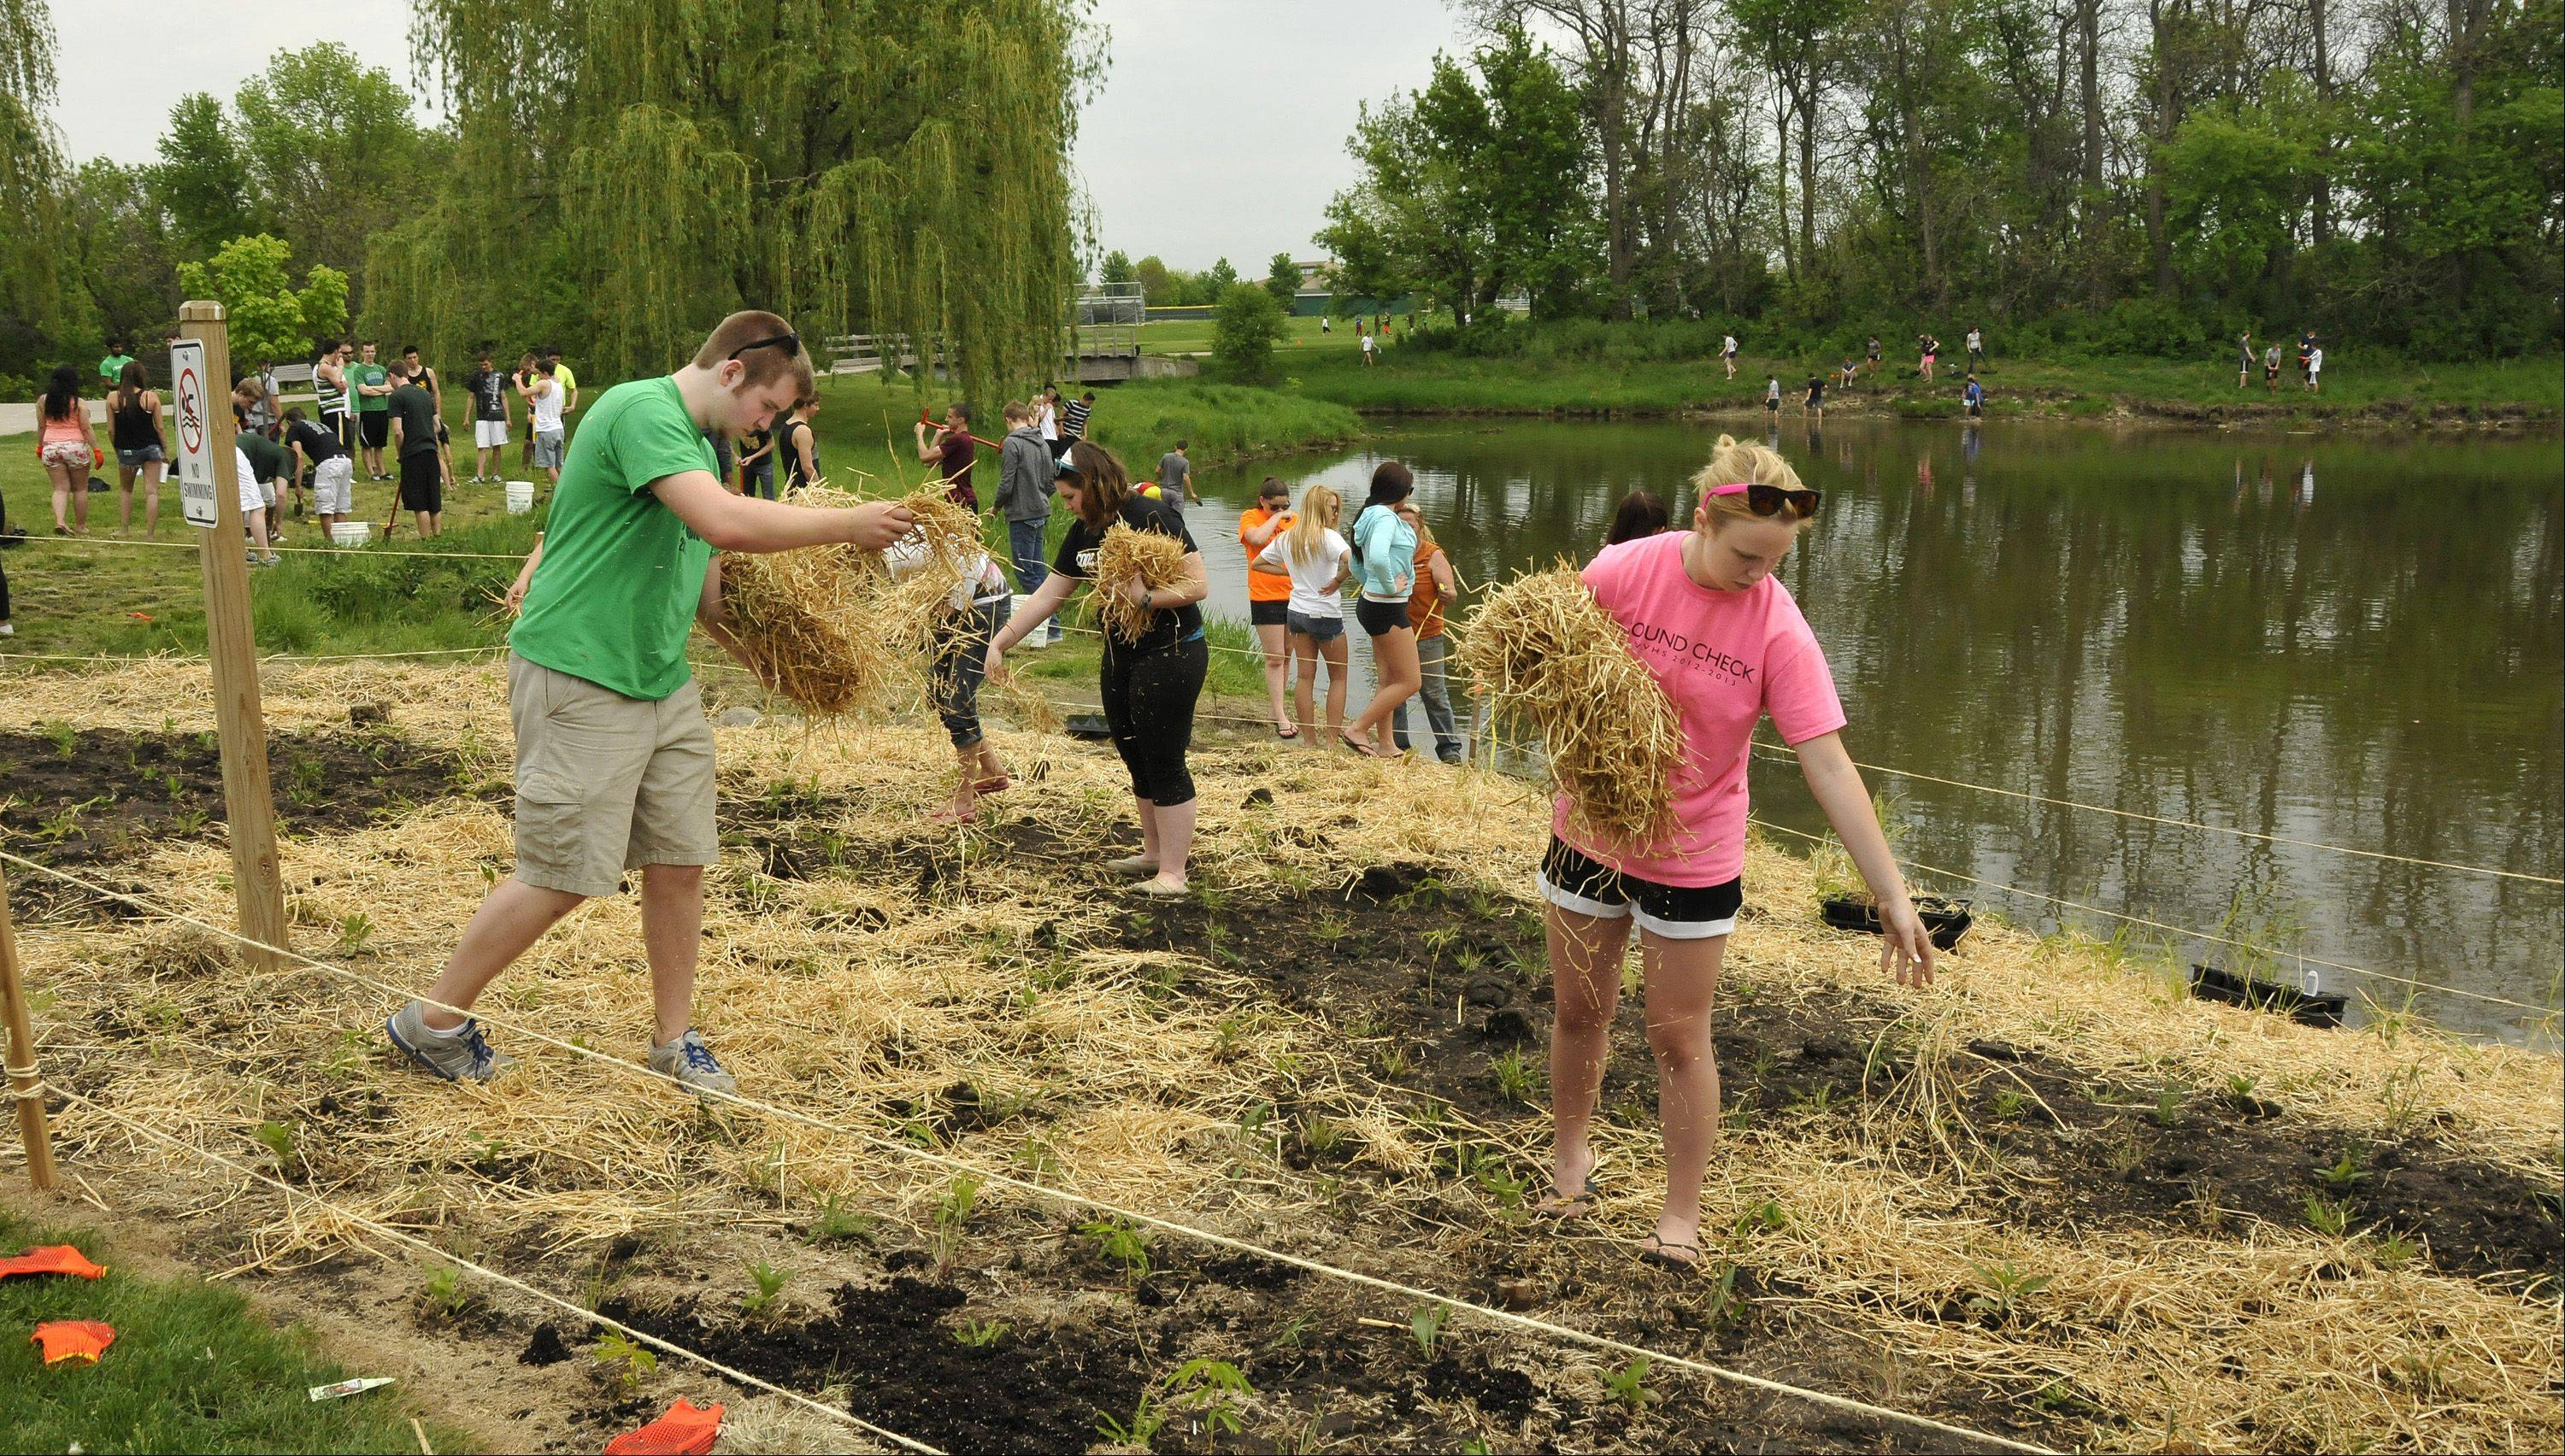 Kyle Horn, left, and Madeline Zehnal scatter hay Friday to protect newly planted prairie plants from weeds around Waubonsie Lake in Aurora. Advanced Placement science students from Waubonsie Valley High School spent two days working to restore prairie around the lake.